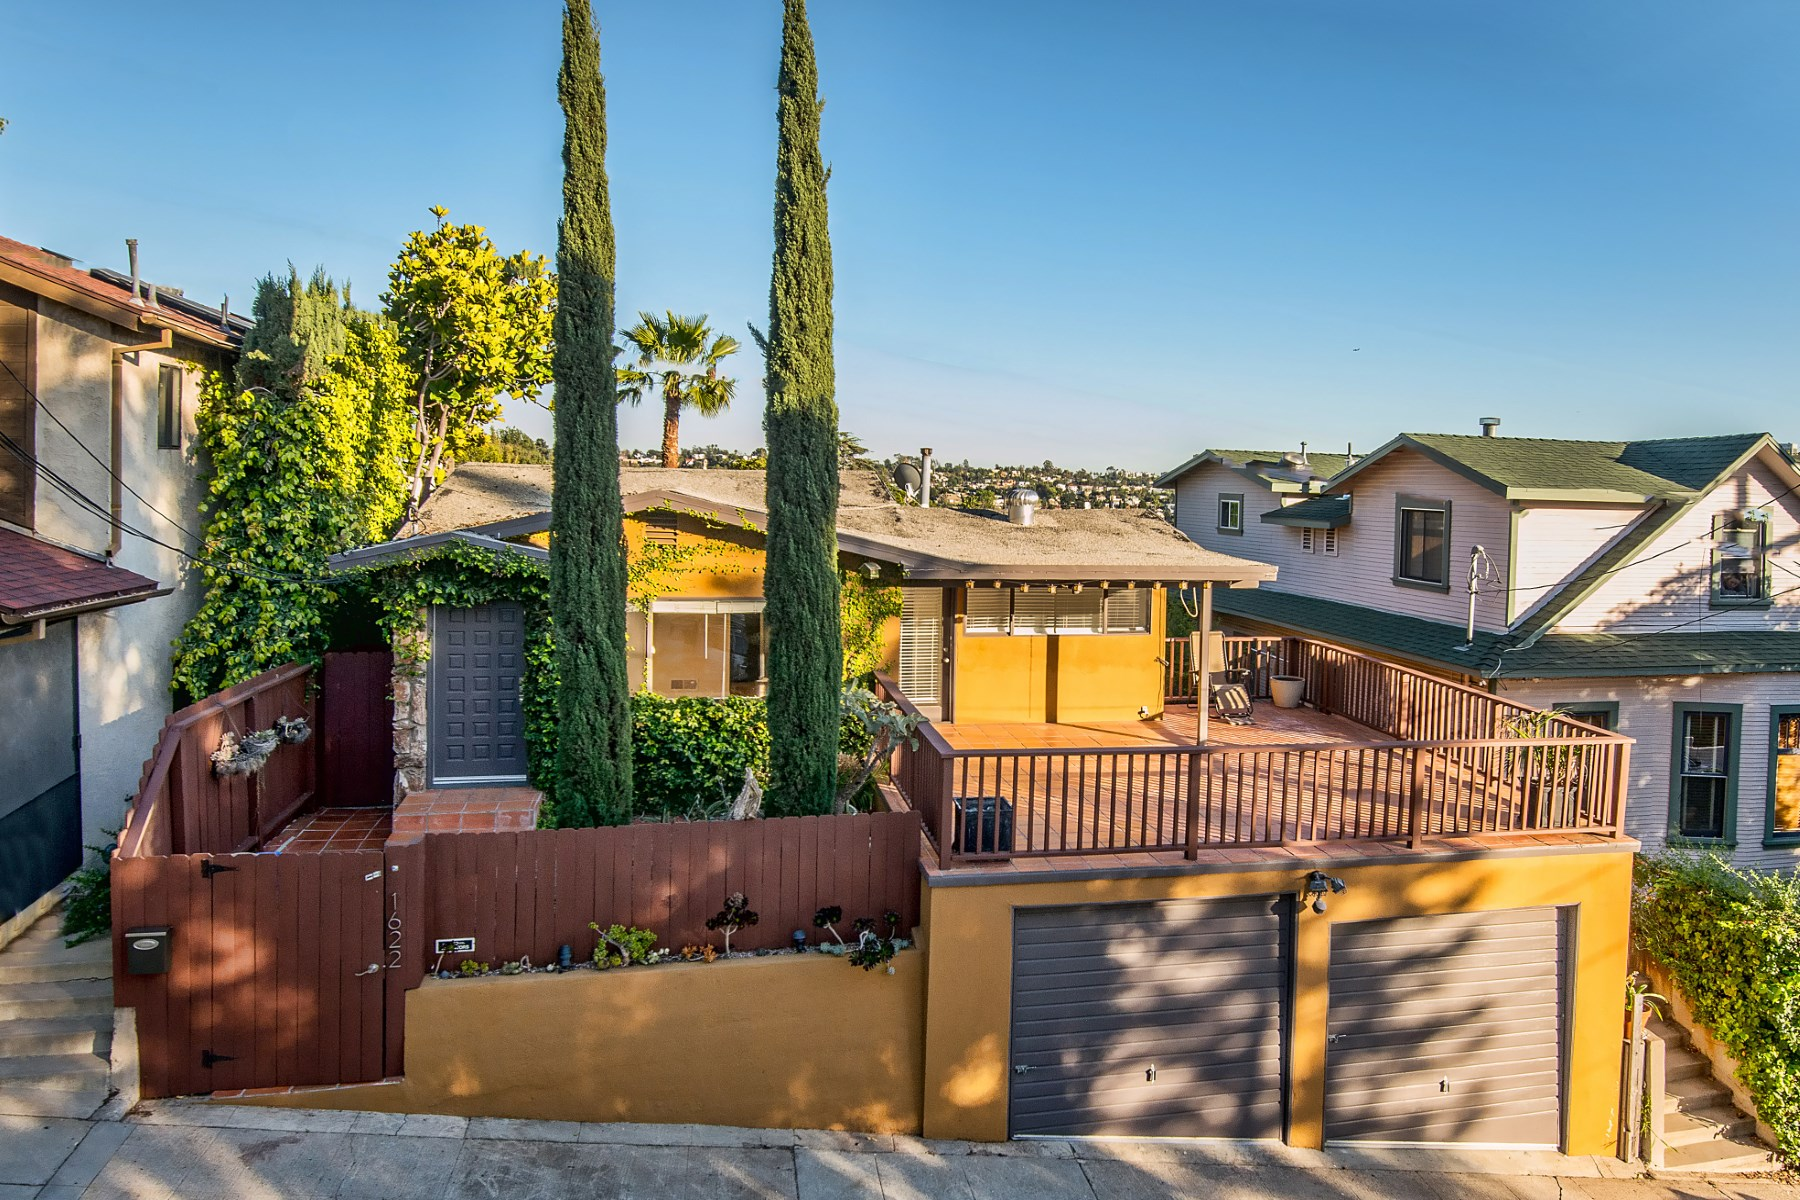 Single Family Home for Sale at A Retreat In The Heart of Silver Lake 1622 North Benton Way Silver Lake, Los Angeles, California, 90026 United States